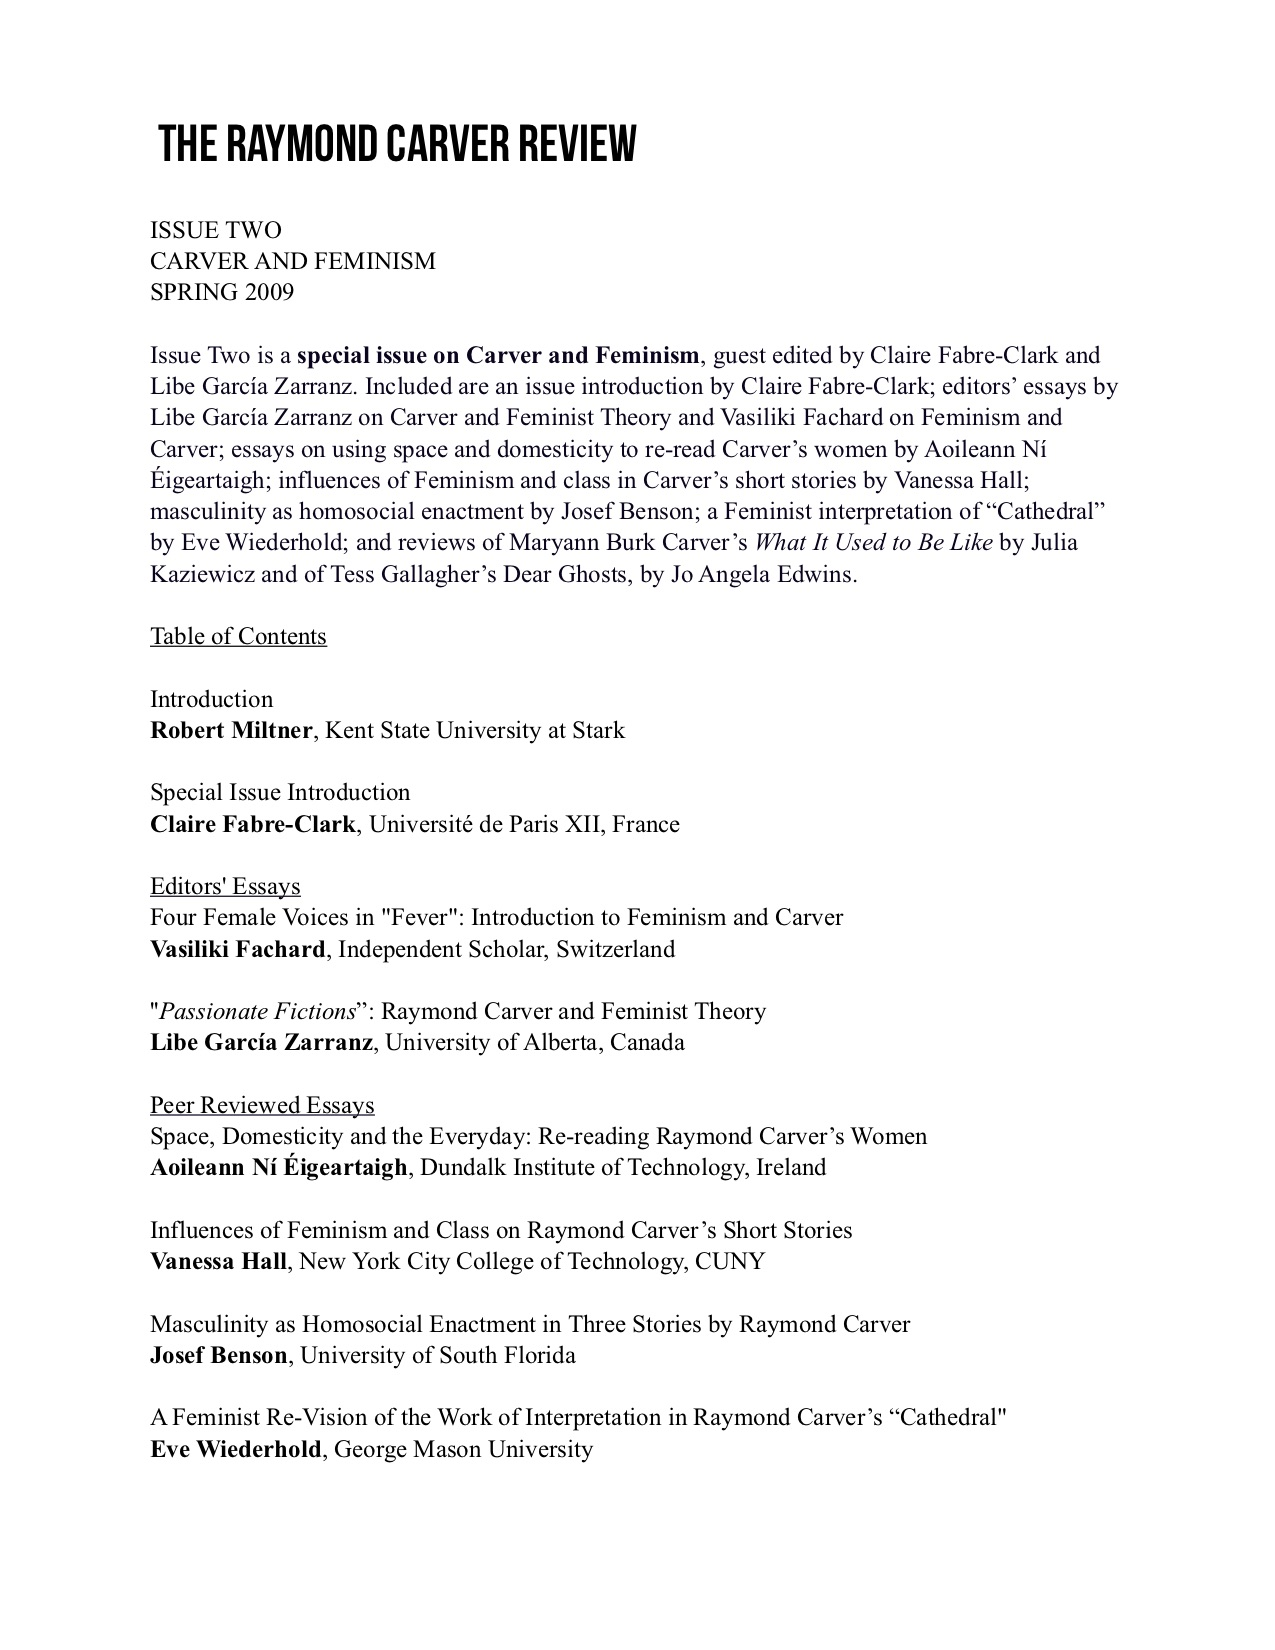 Table of Contents2.jpg